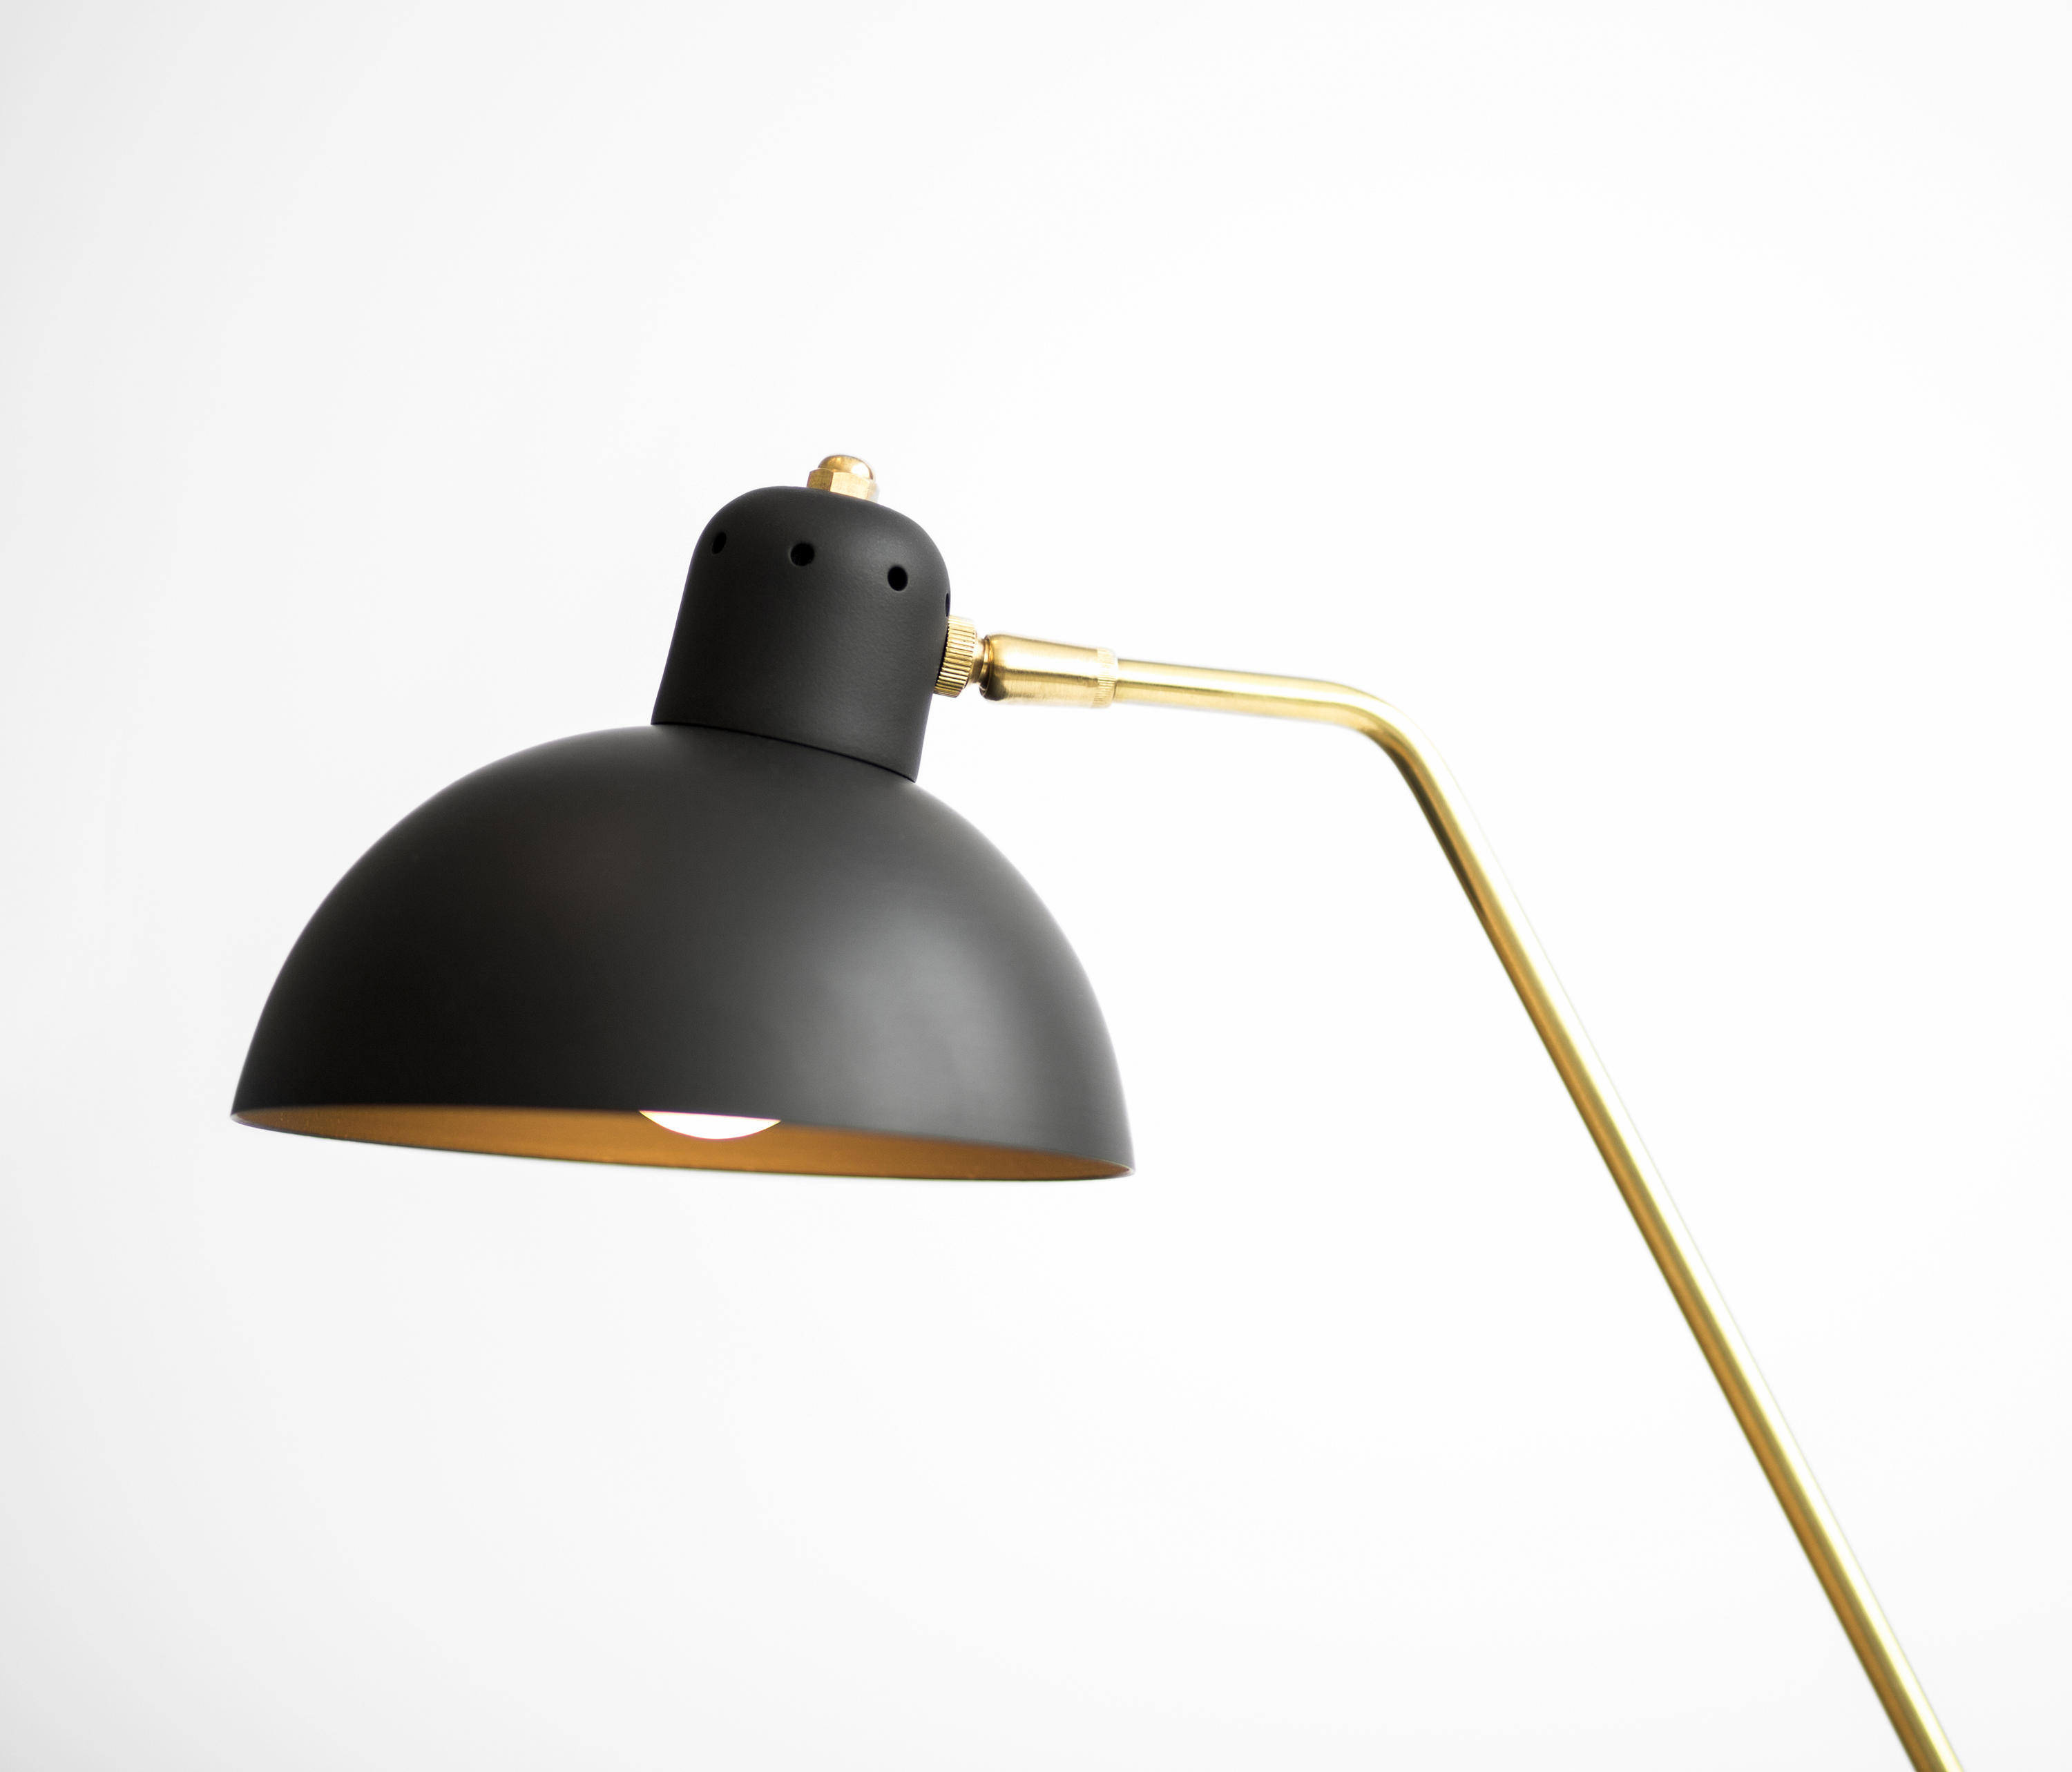 ... WAL01 by Lambert et Fils | General lighting ...  sc 1 st  Architonic & WAL01 - General lighting from Lambert et Fils | Architonic azcodes.com